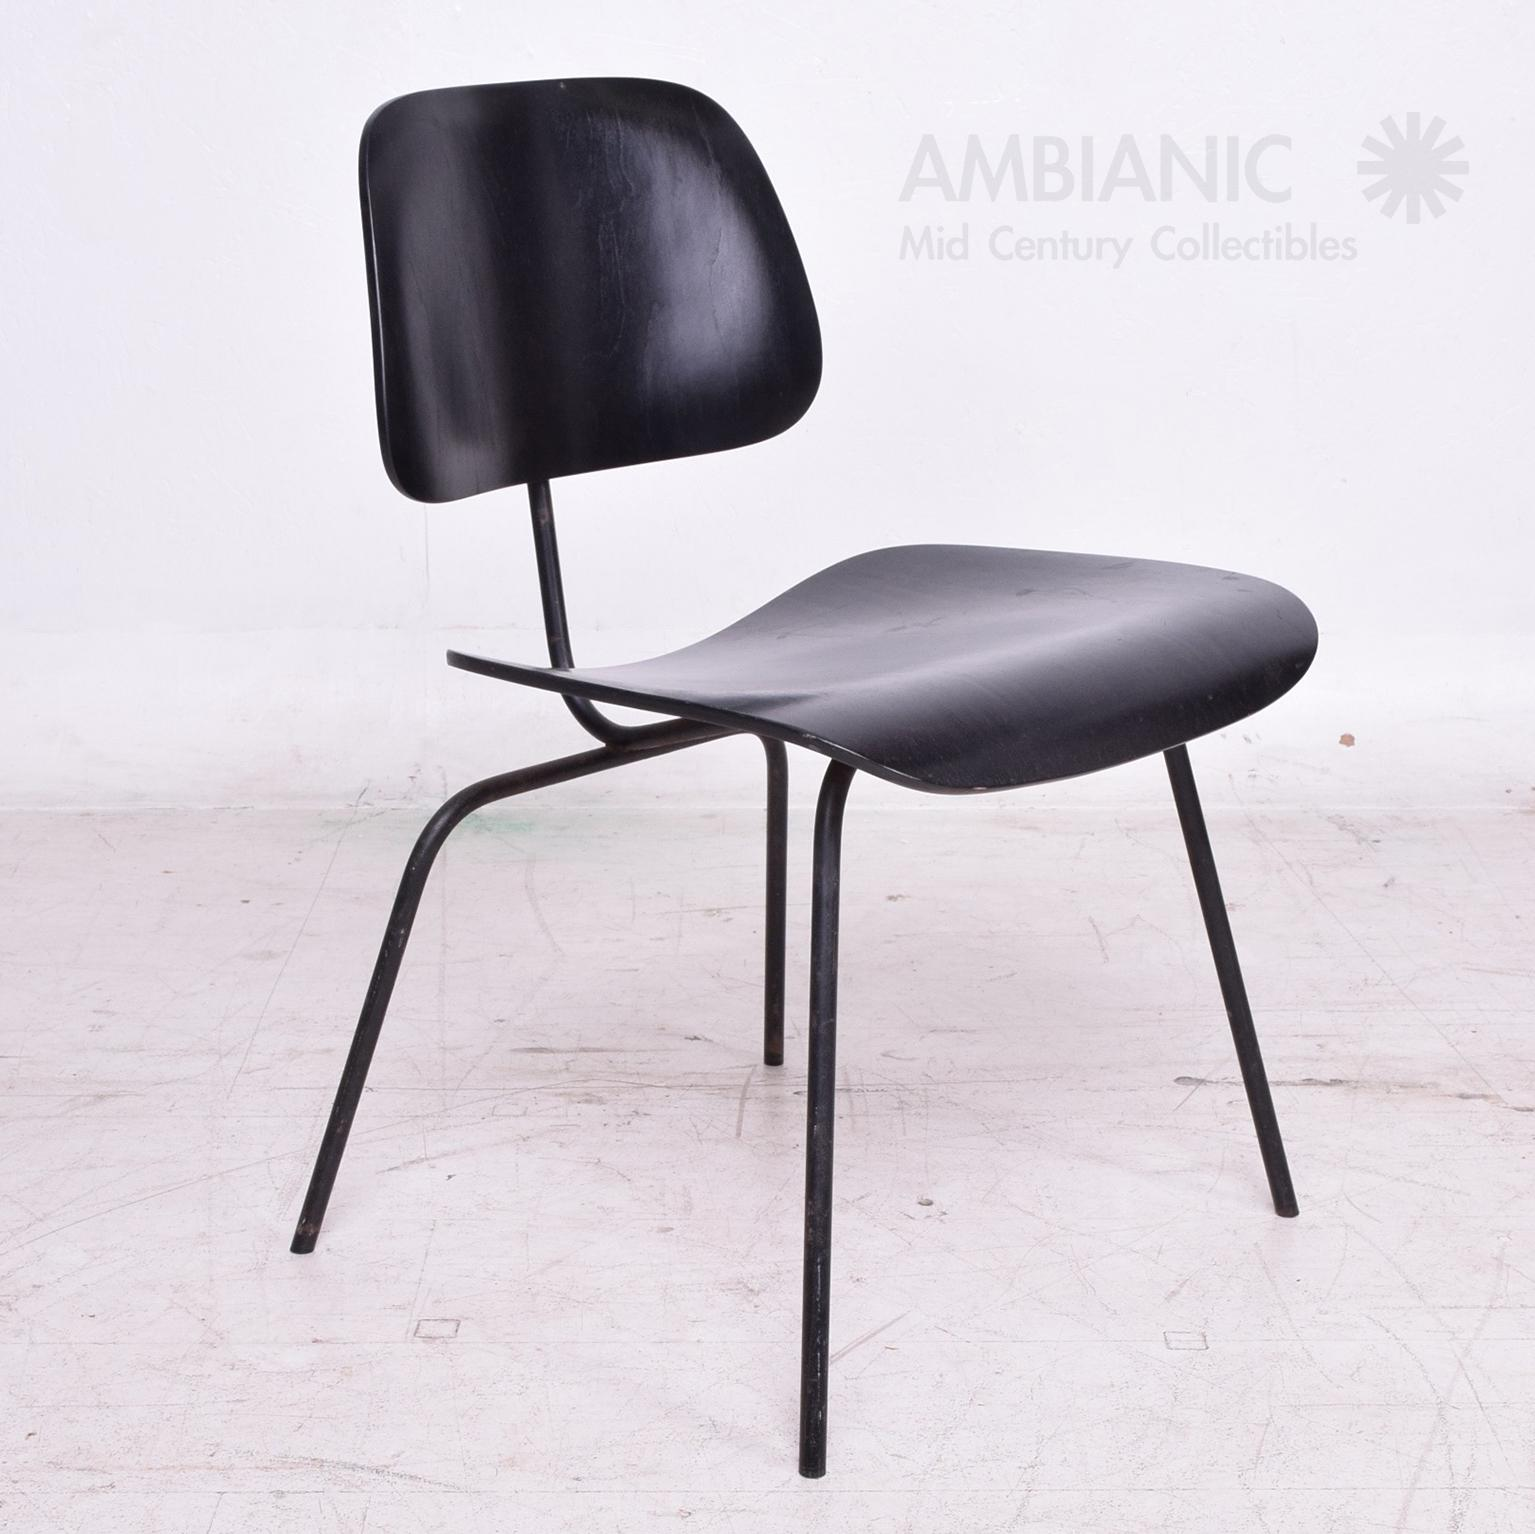 black eames chair cast iron patio chairs lovely mid century modern dcm in decaso for sale image 4 of